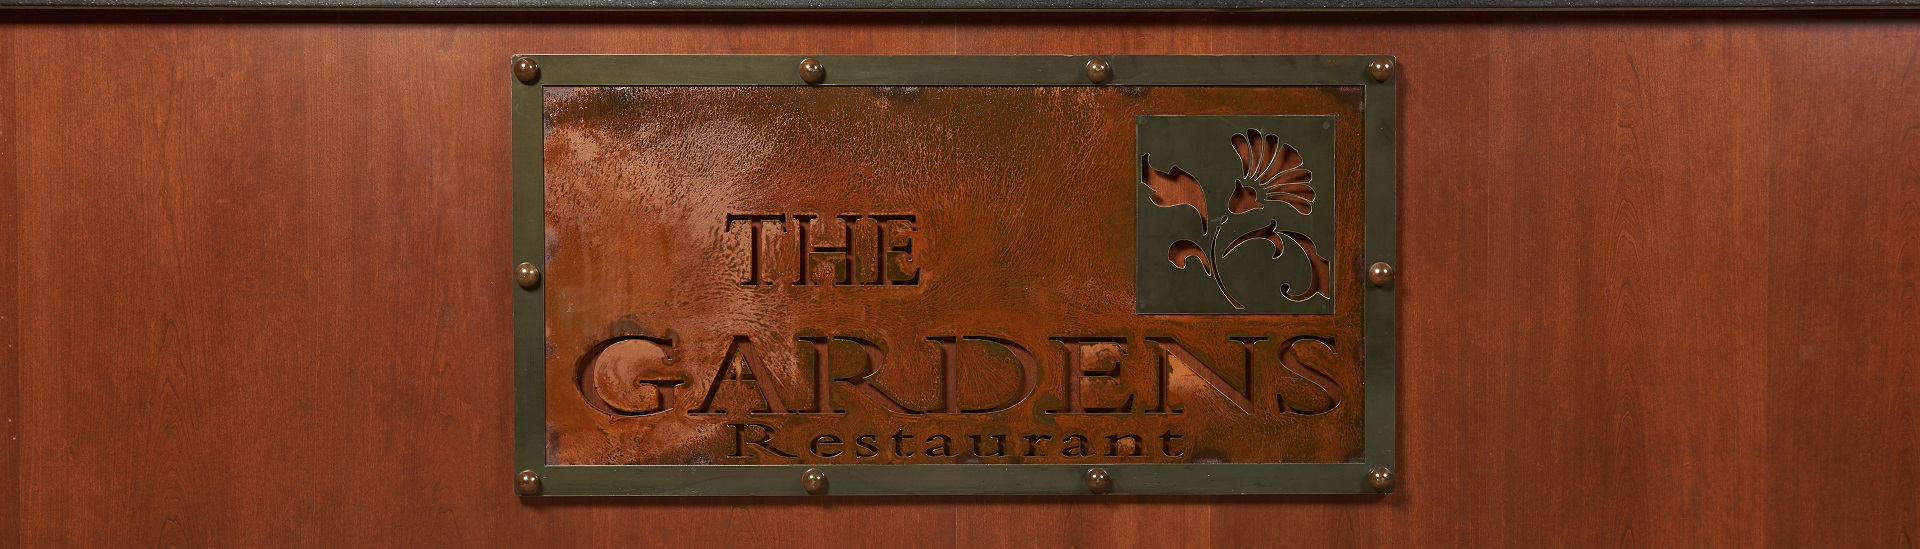 The Gardens Restaurants - State College Buffet & Restaurants ...